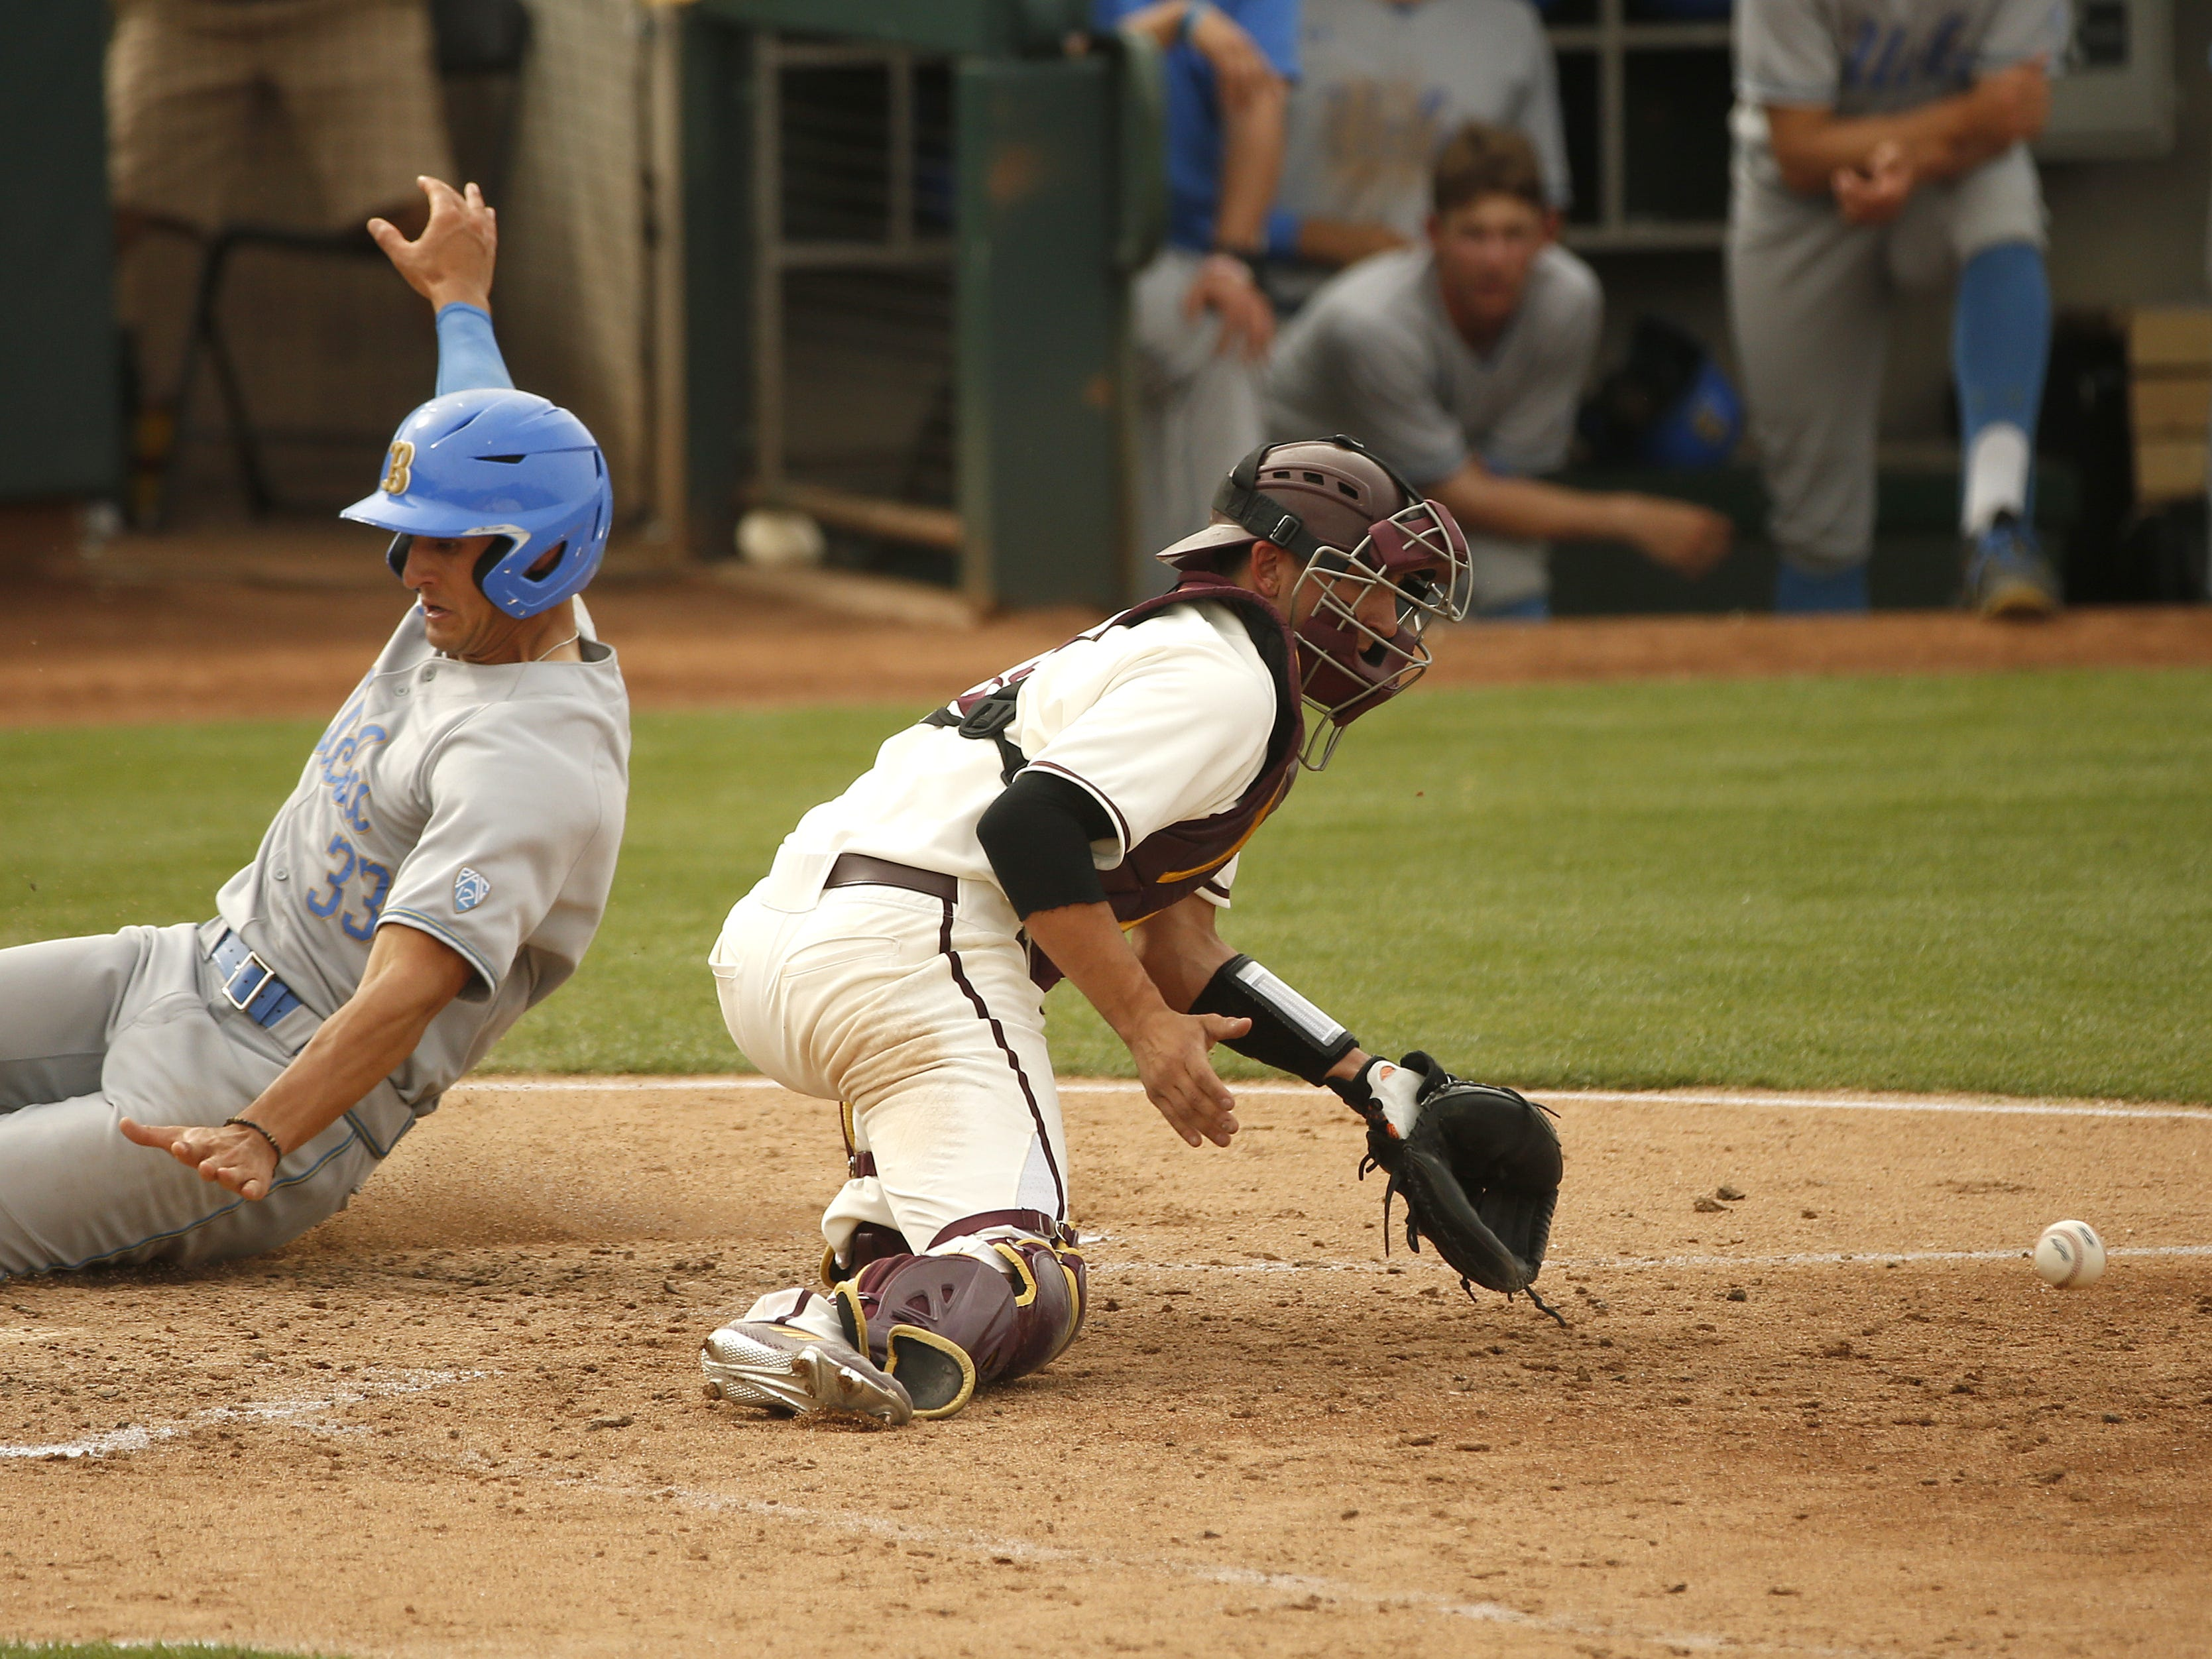 UCLA's Chase Strumpf (33) slides safely home past a late throw to ASU's Sam Ferri (9) during the sixth inning at Phoenix Municipal Stadium in Phoenix, Ariz. on May 5, 2019.